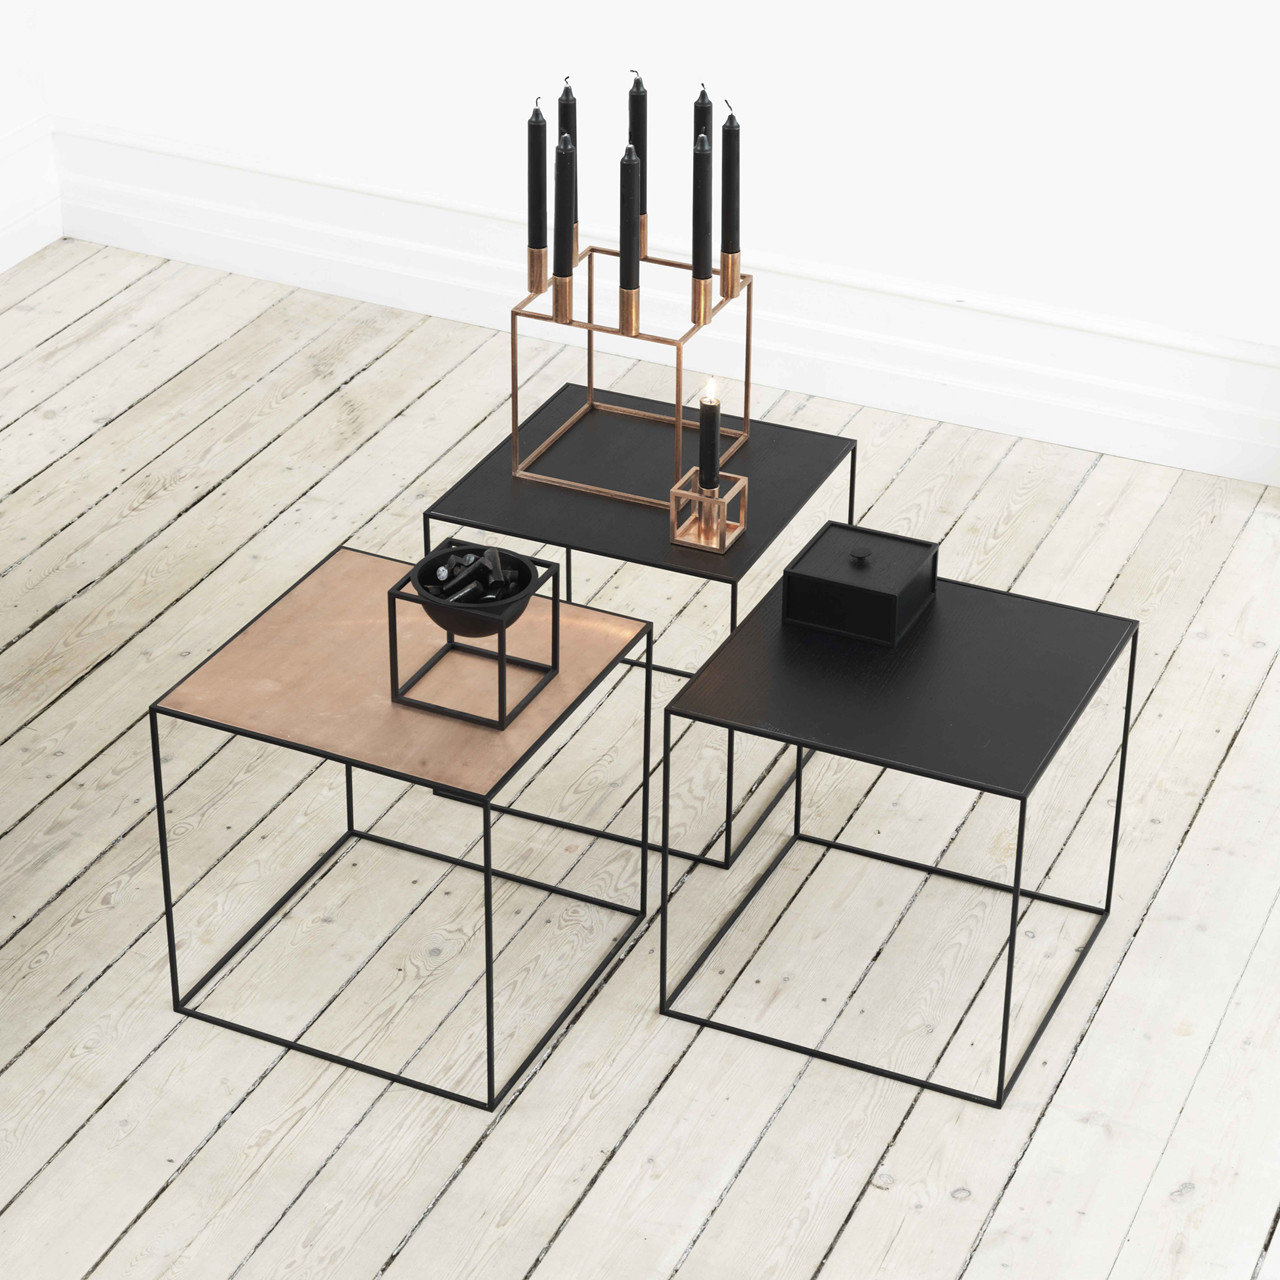 by lassen kubus line kobber. Black Bedroom Furniture Sets. Home Design Ideas